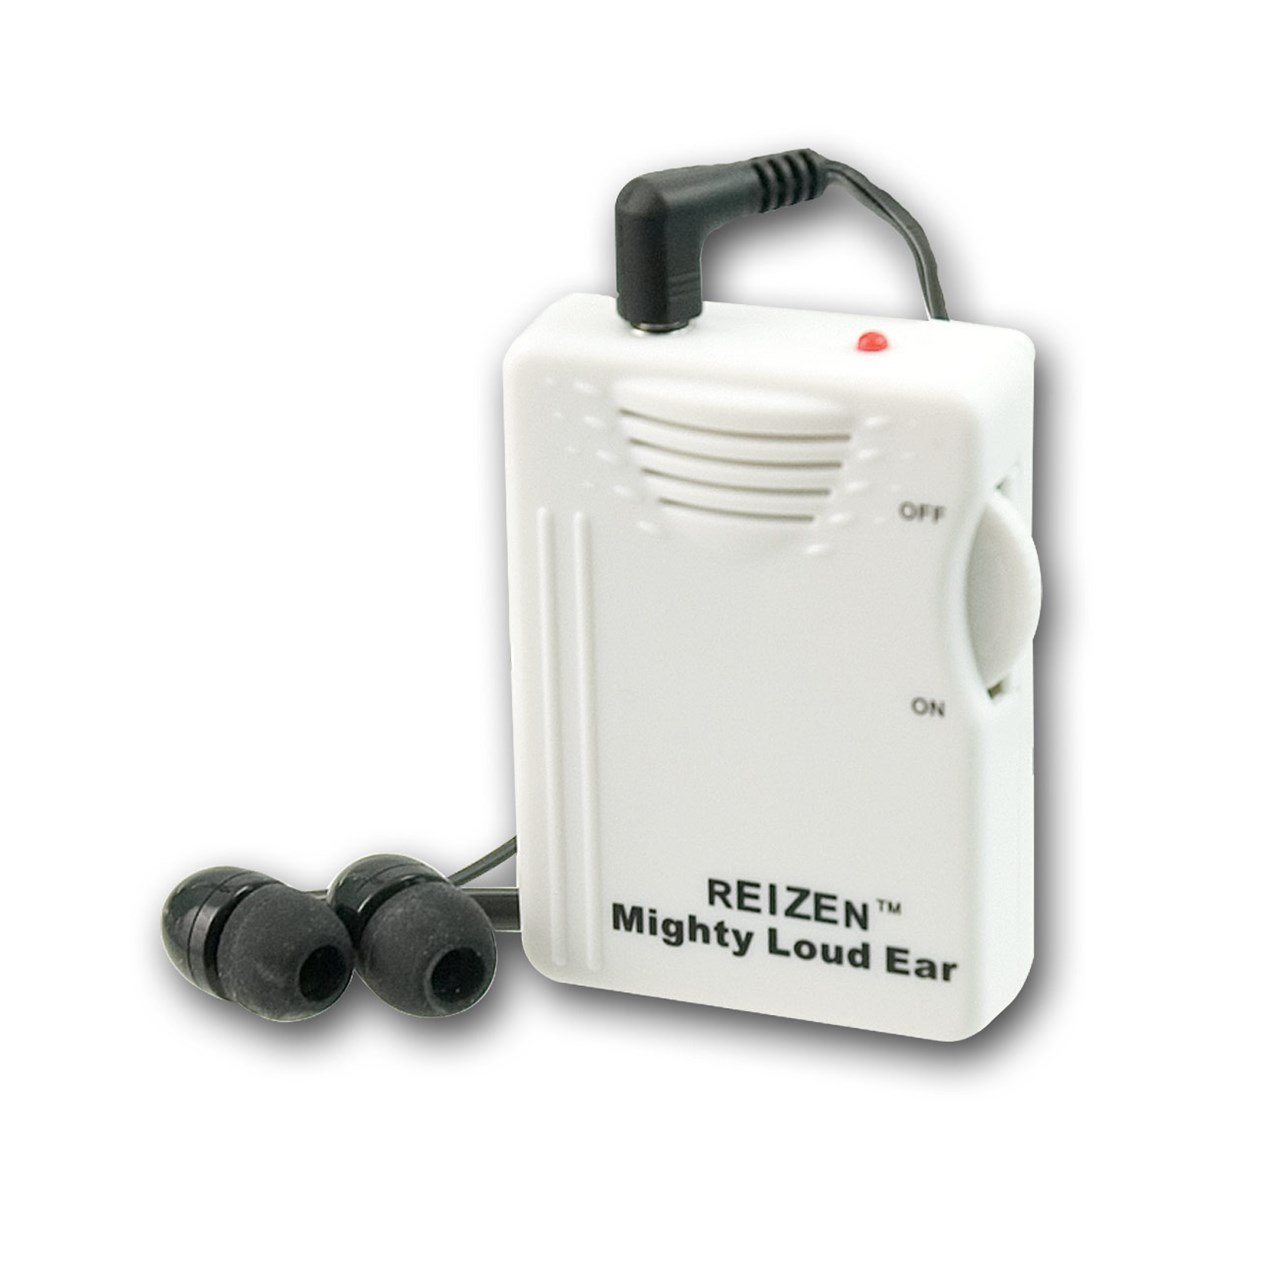 MaxiAids | Reizen Mighty Loud Ear 120dB Personal Sound ...